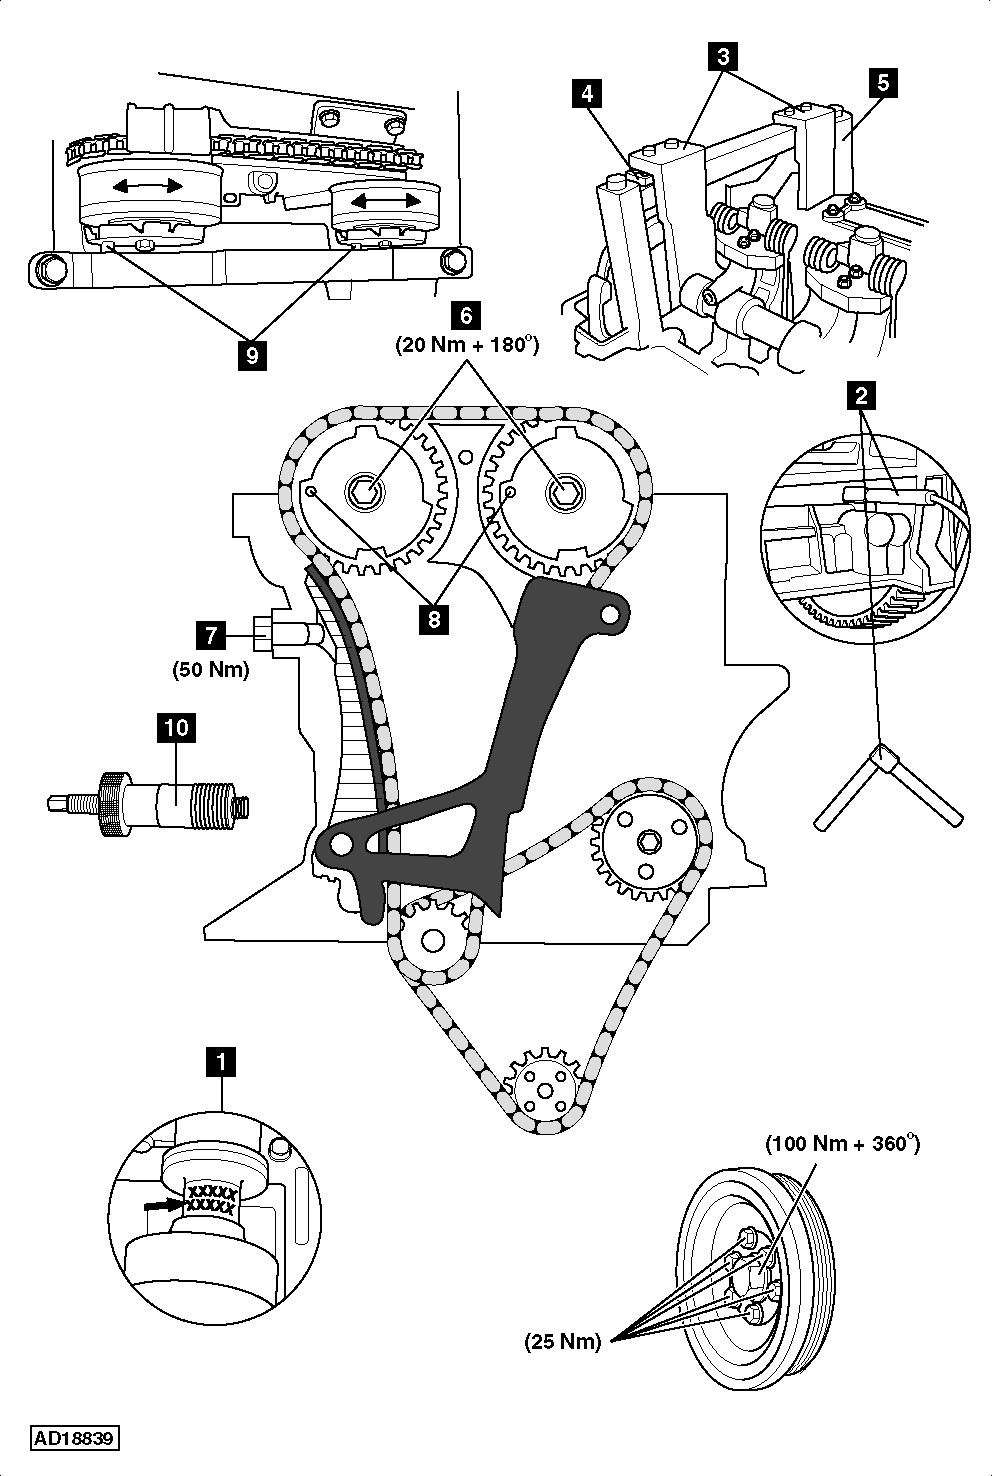 2006 honda pilot timing belt diagram html